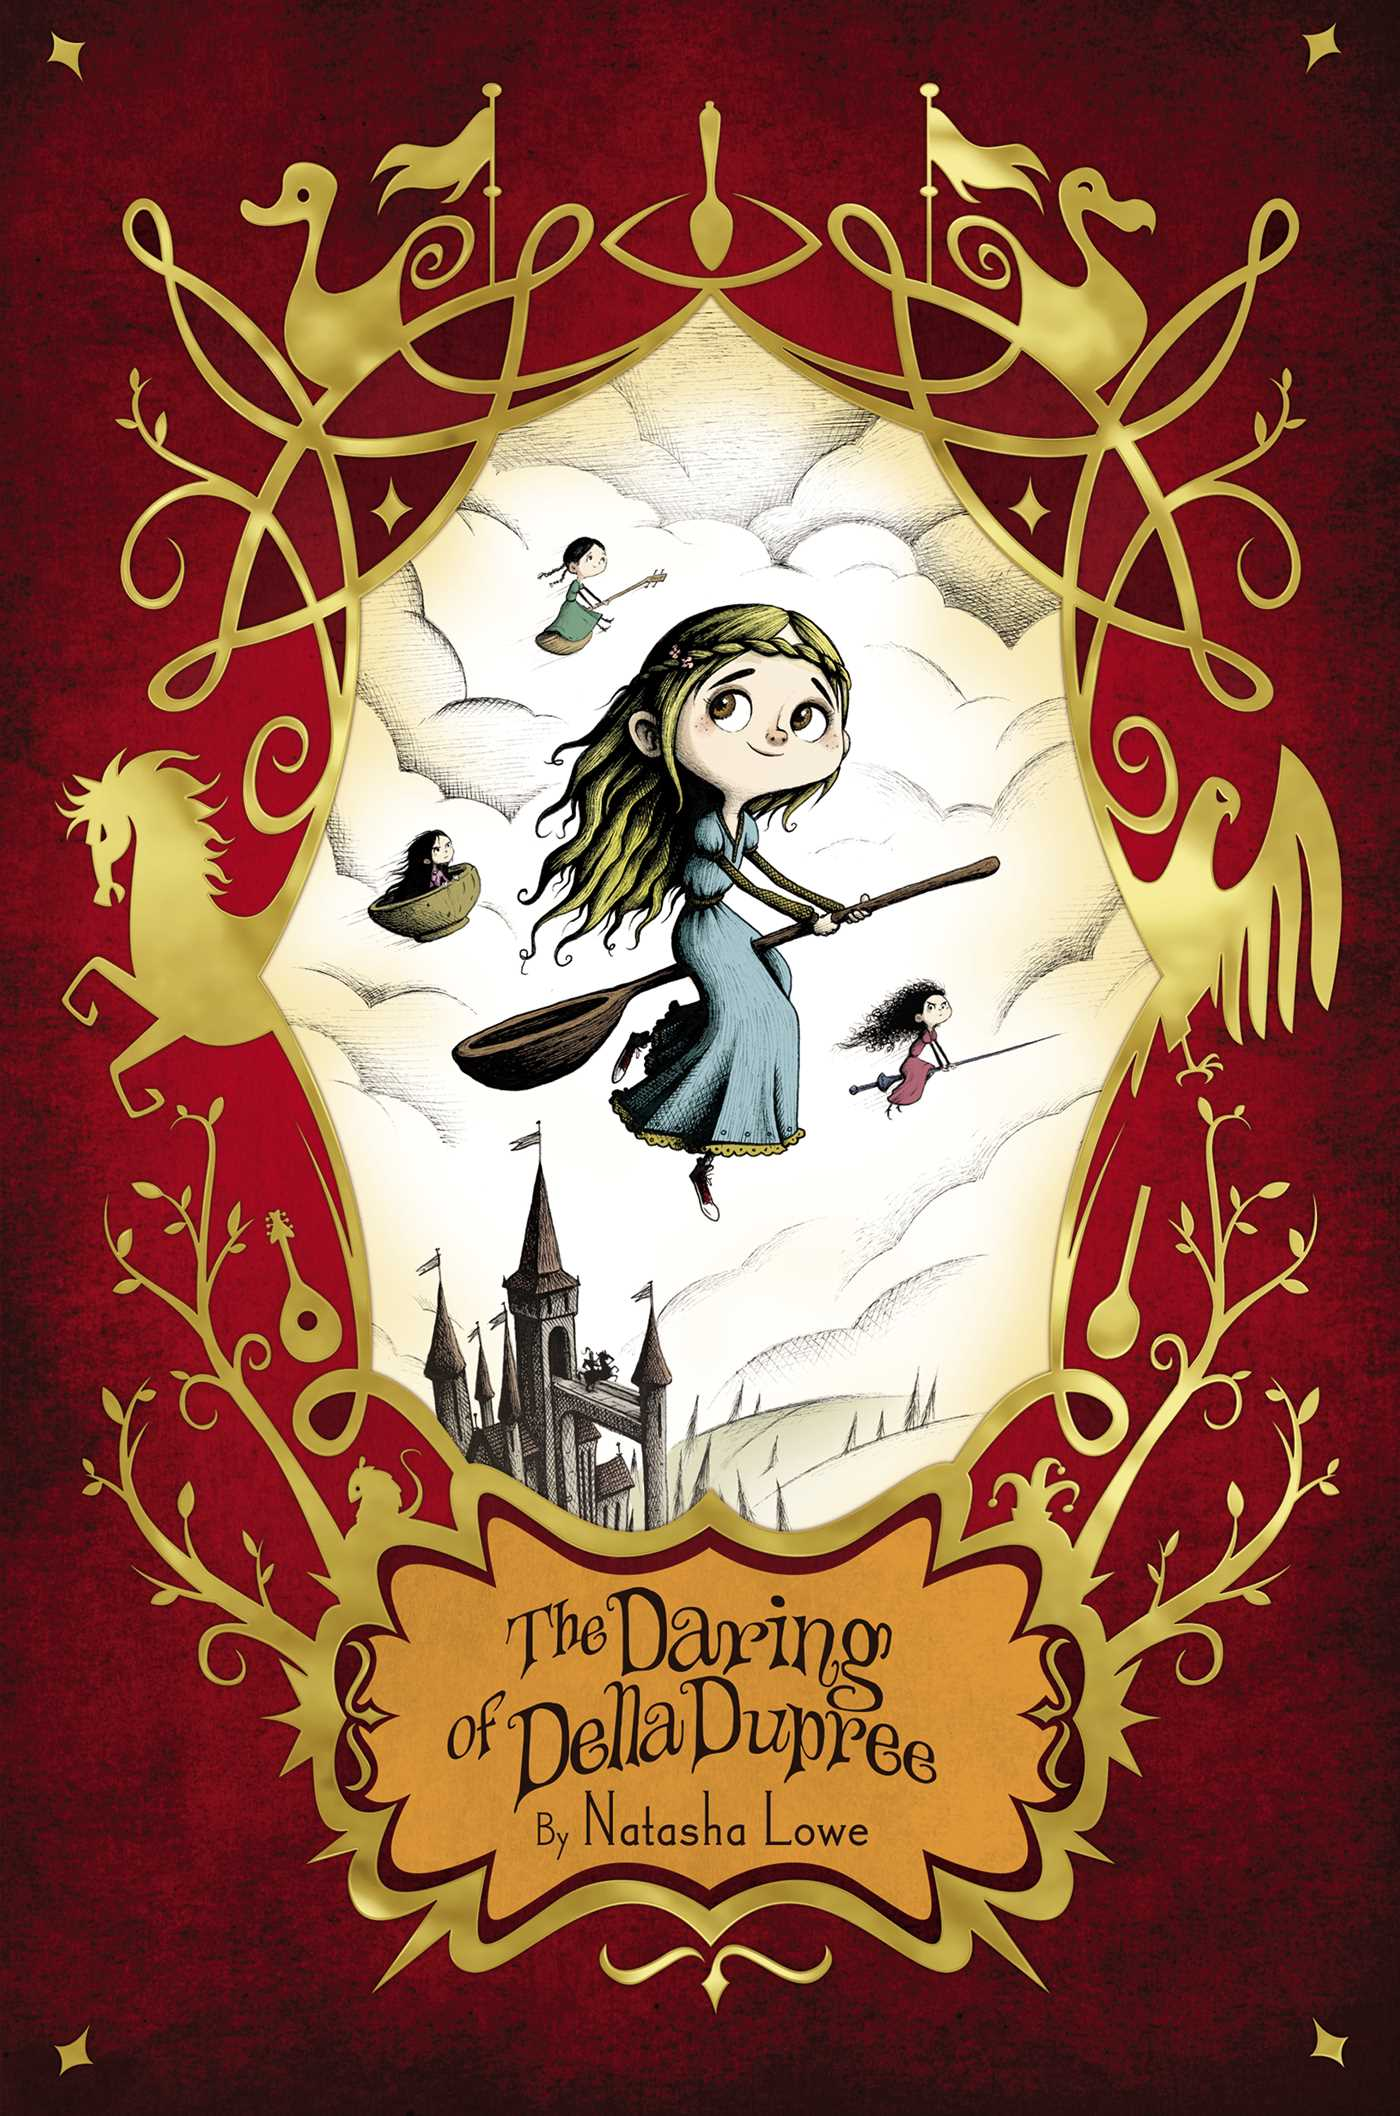 The Daring of Della Dupree, Natasha Lowe, Brown, Gold, Horse, Bird, Duck, Girl, Spoon, Ladle, Bowl, Castle, Horse, Fantasy, Witches, Time Travel, Children's Books, Cute, Witches